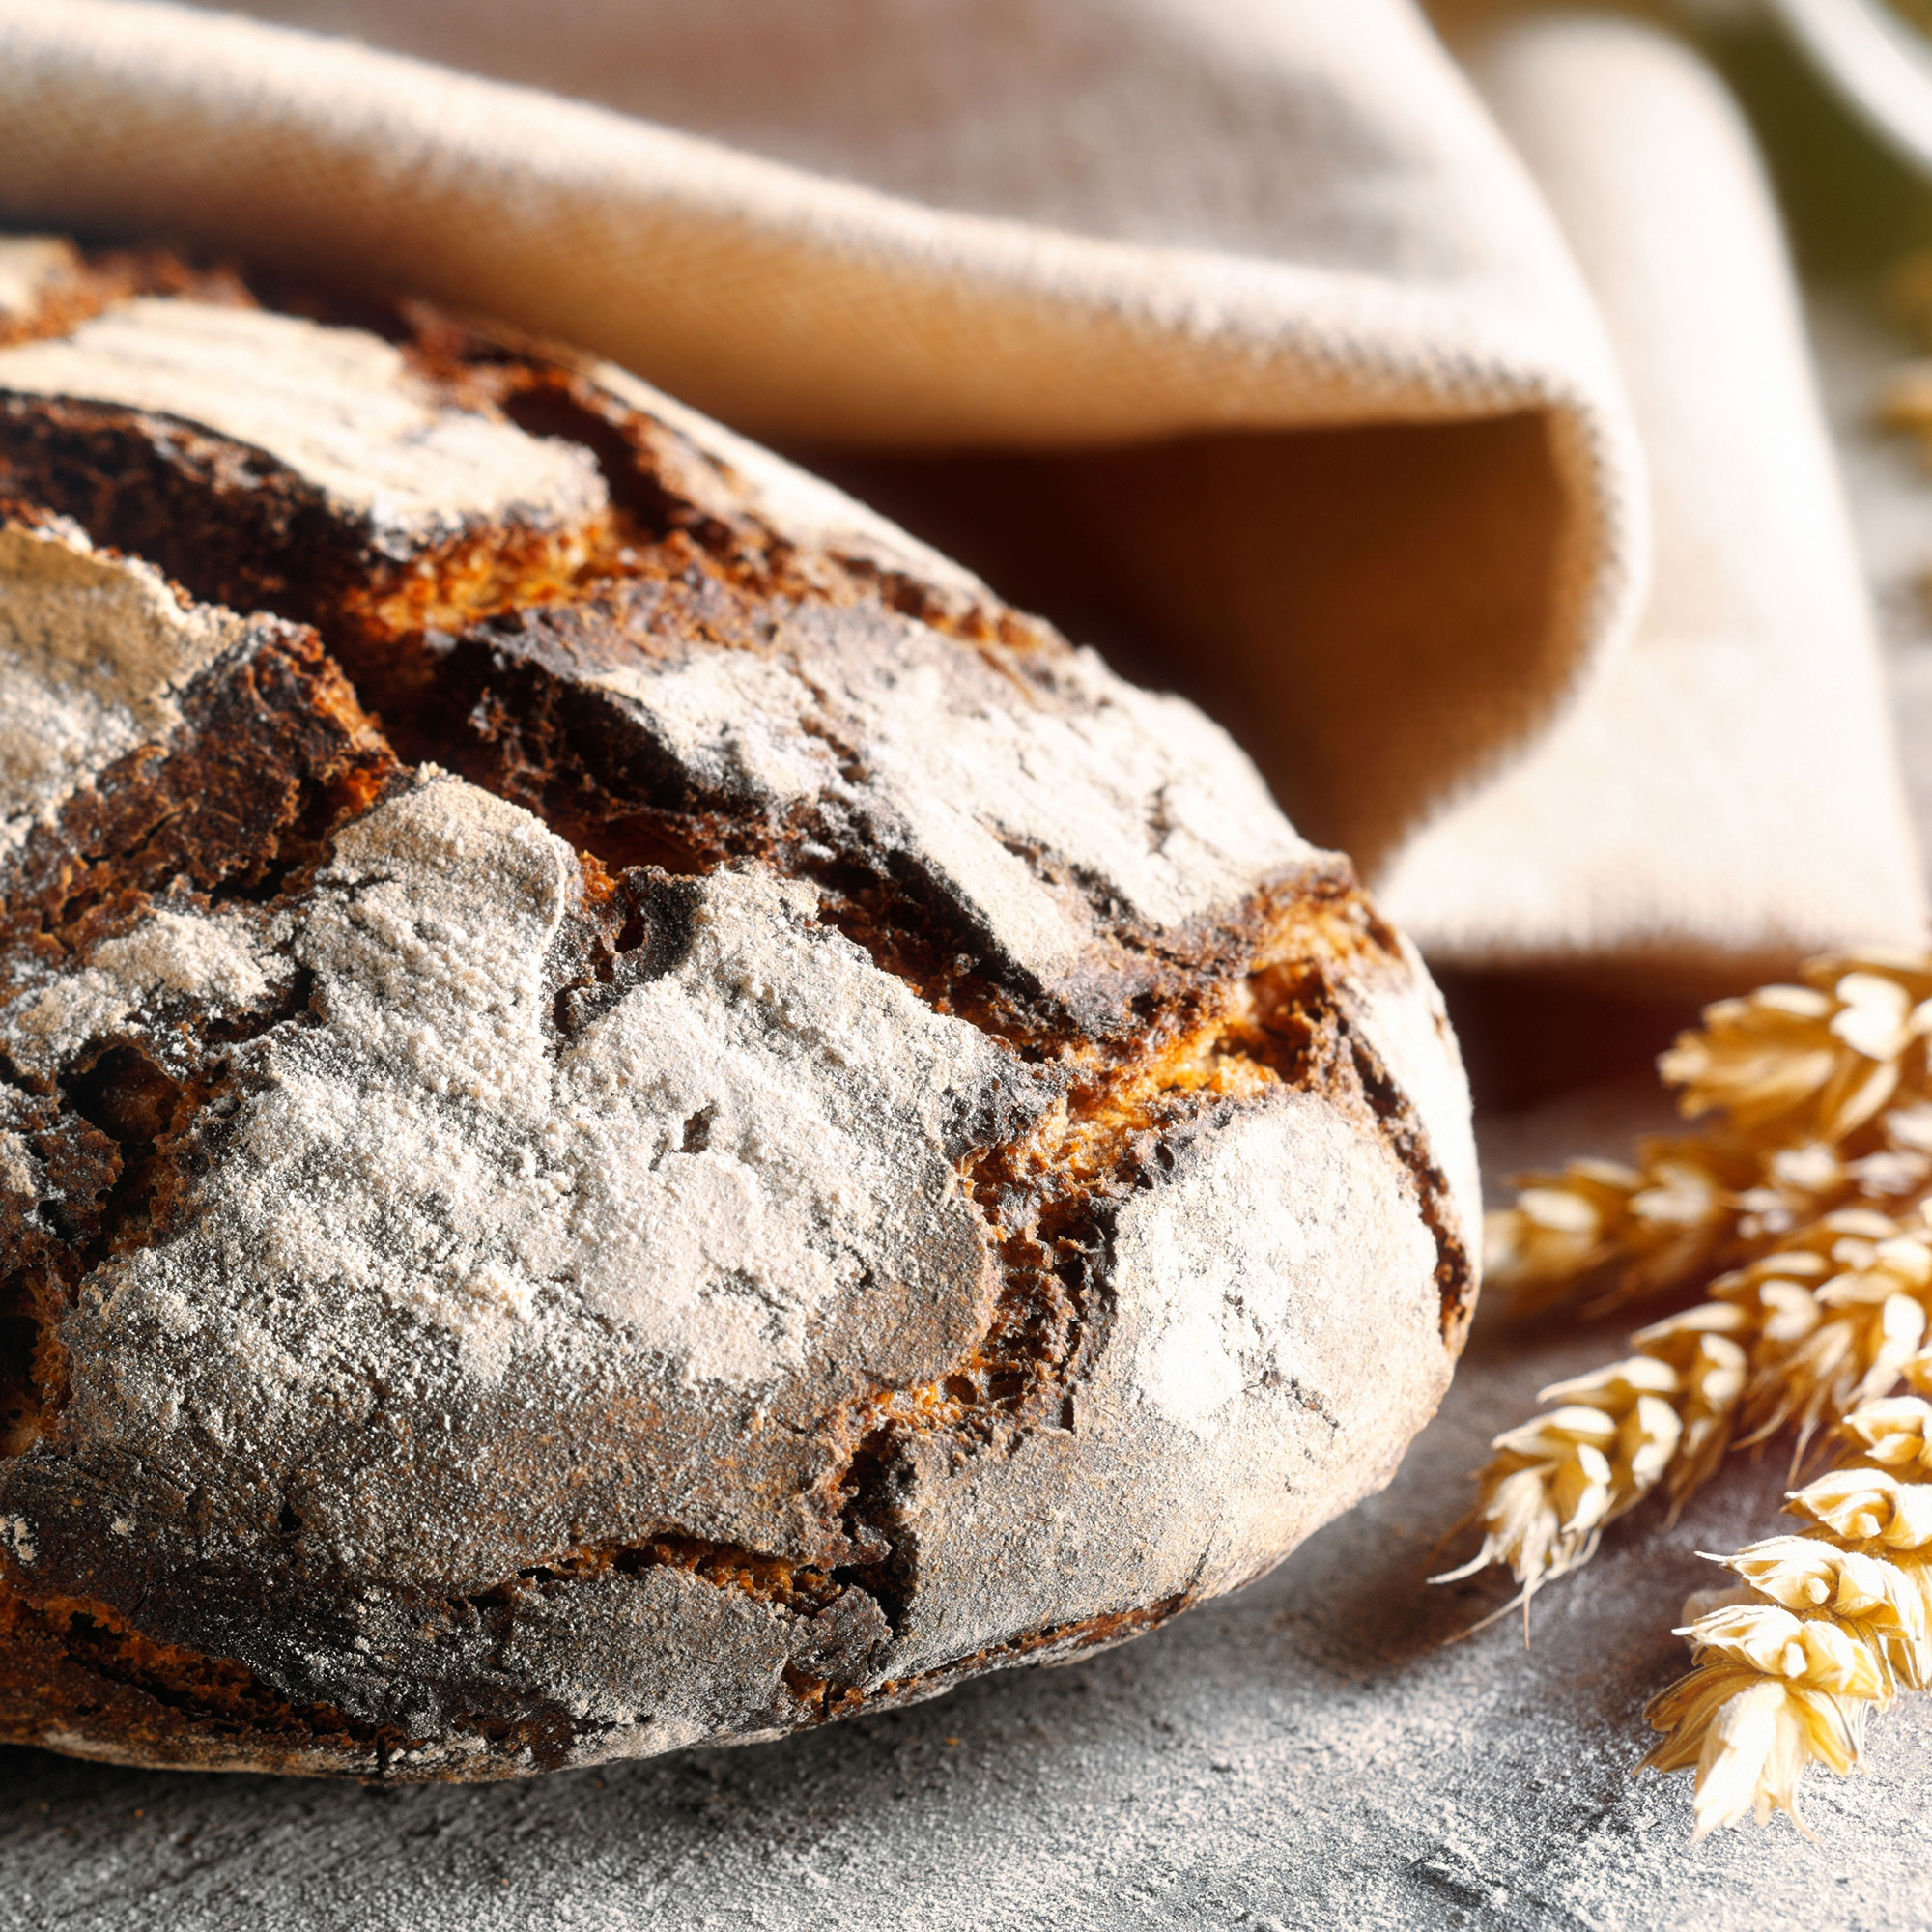 Formation Collaborateur·rice en boulangerie artisanale et durable